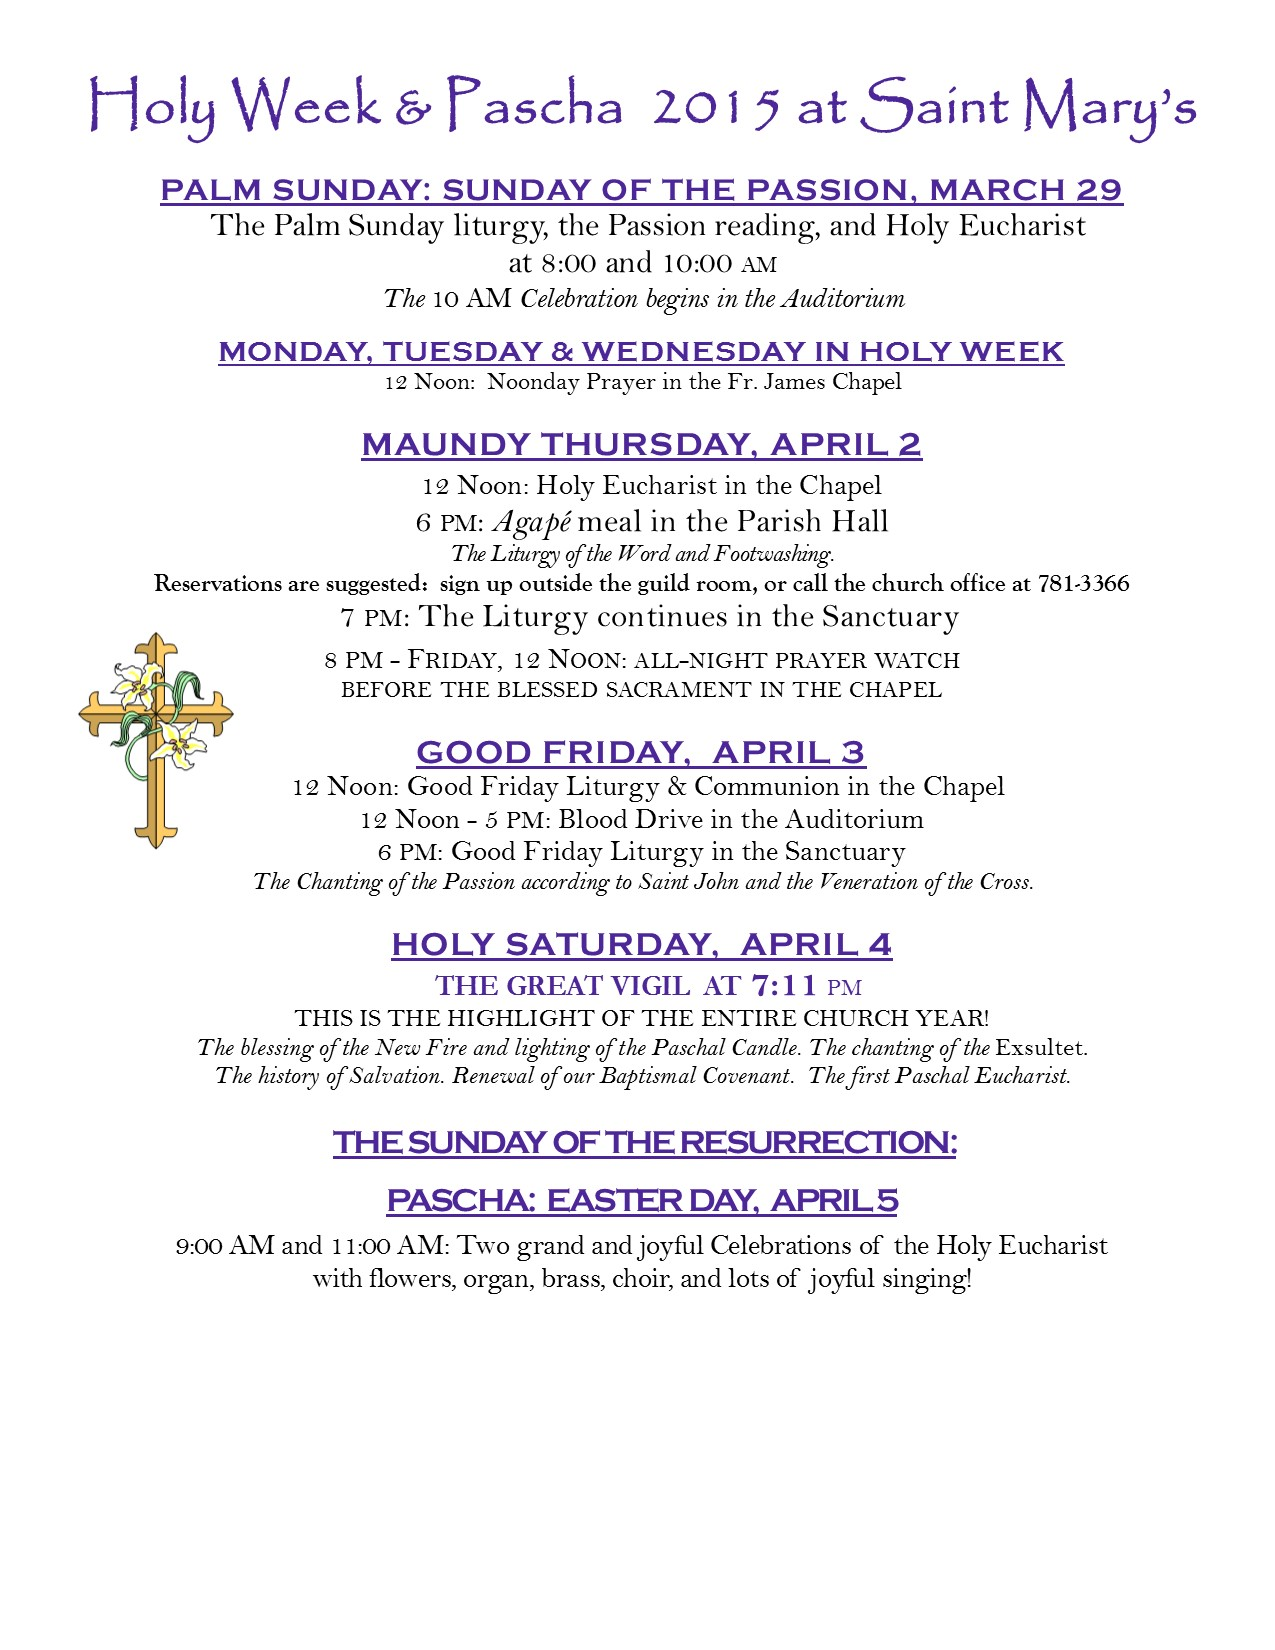 Holy Week 15  flyer